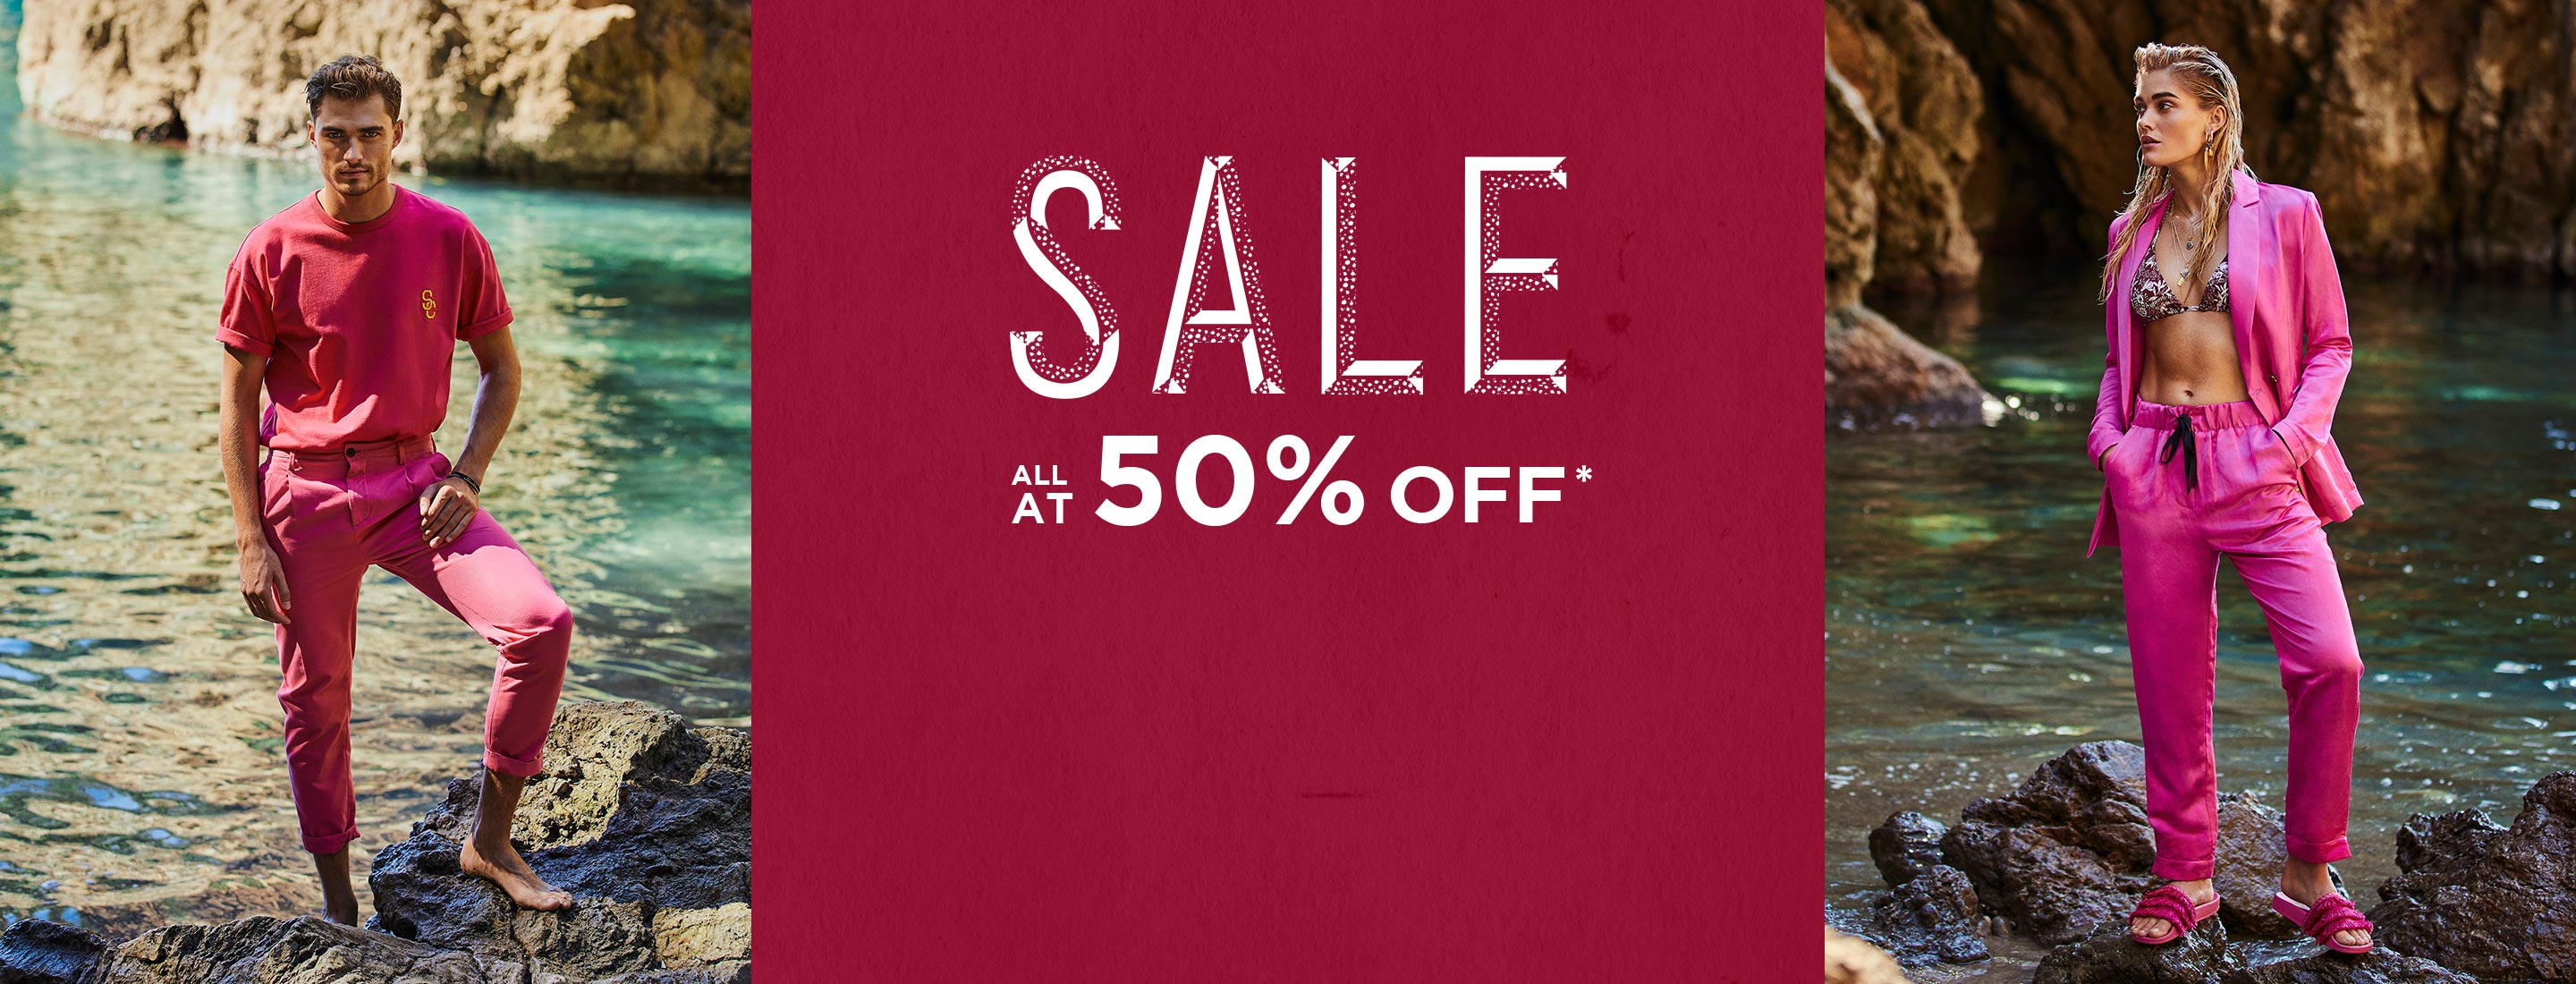 All sale at 50% off